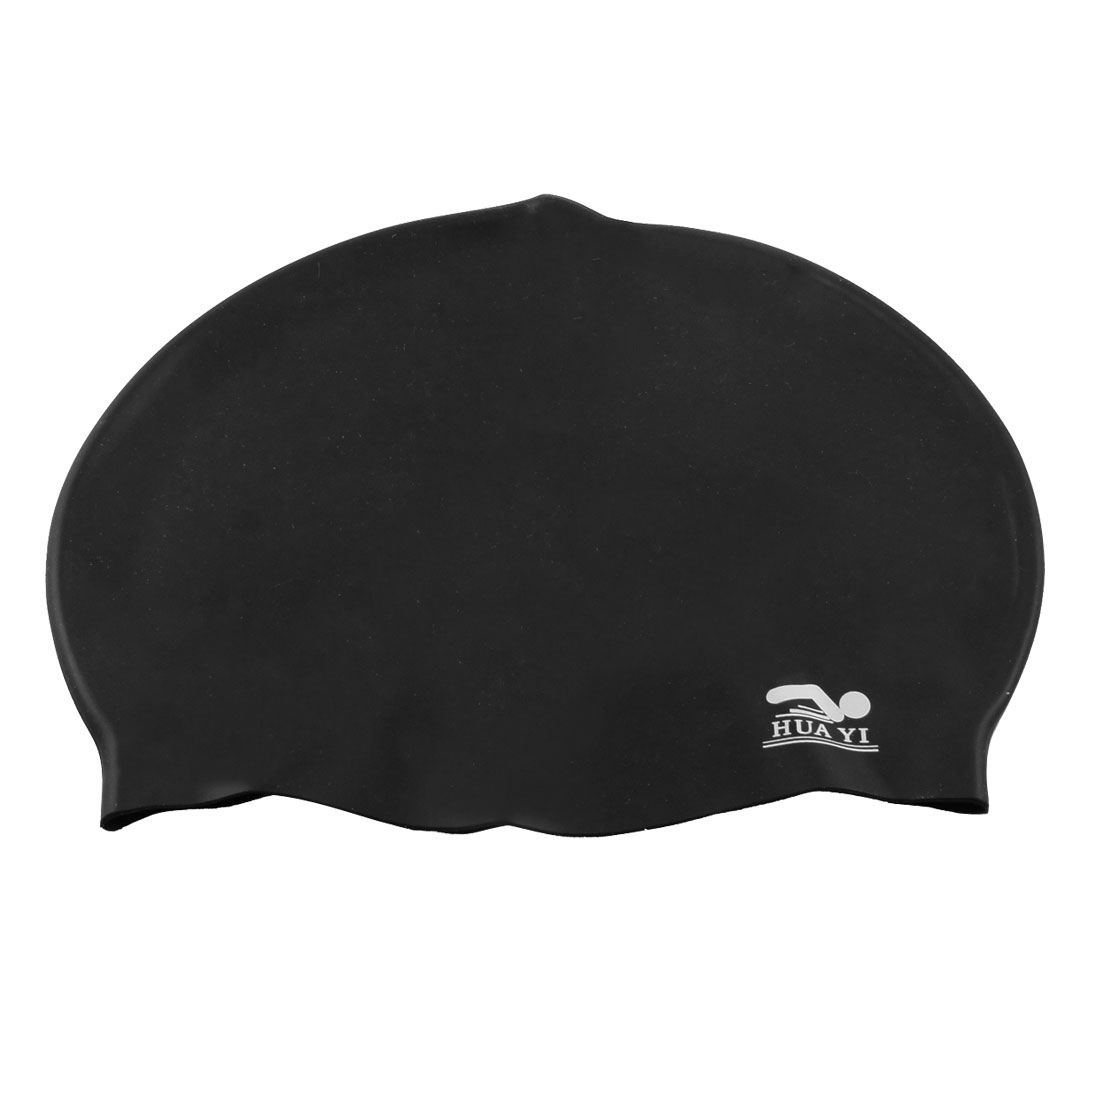 Black Soft Silicone Inside Grains Design Swimming Cap for Unisex